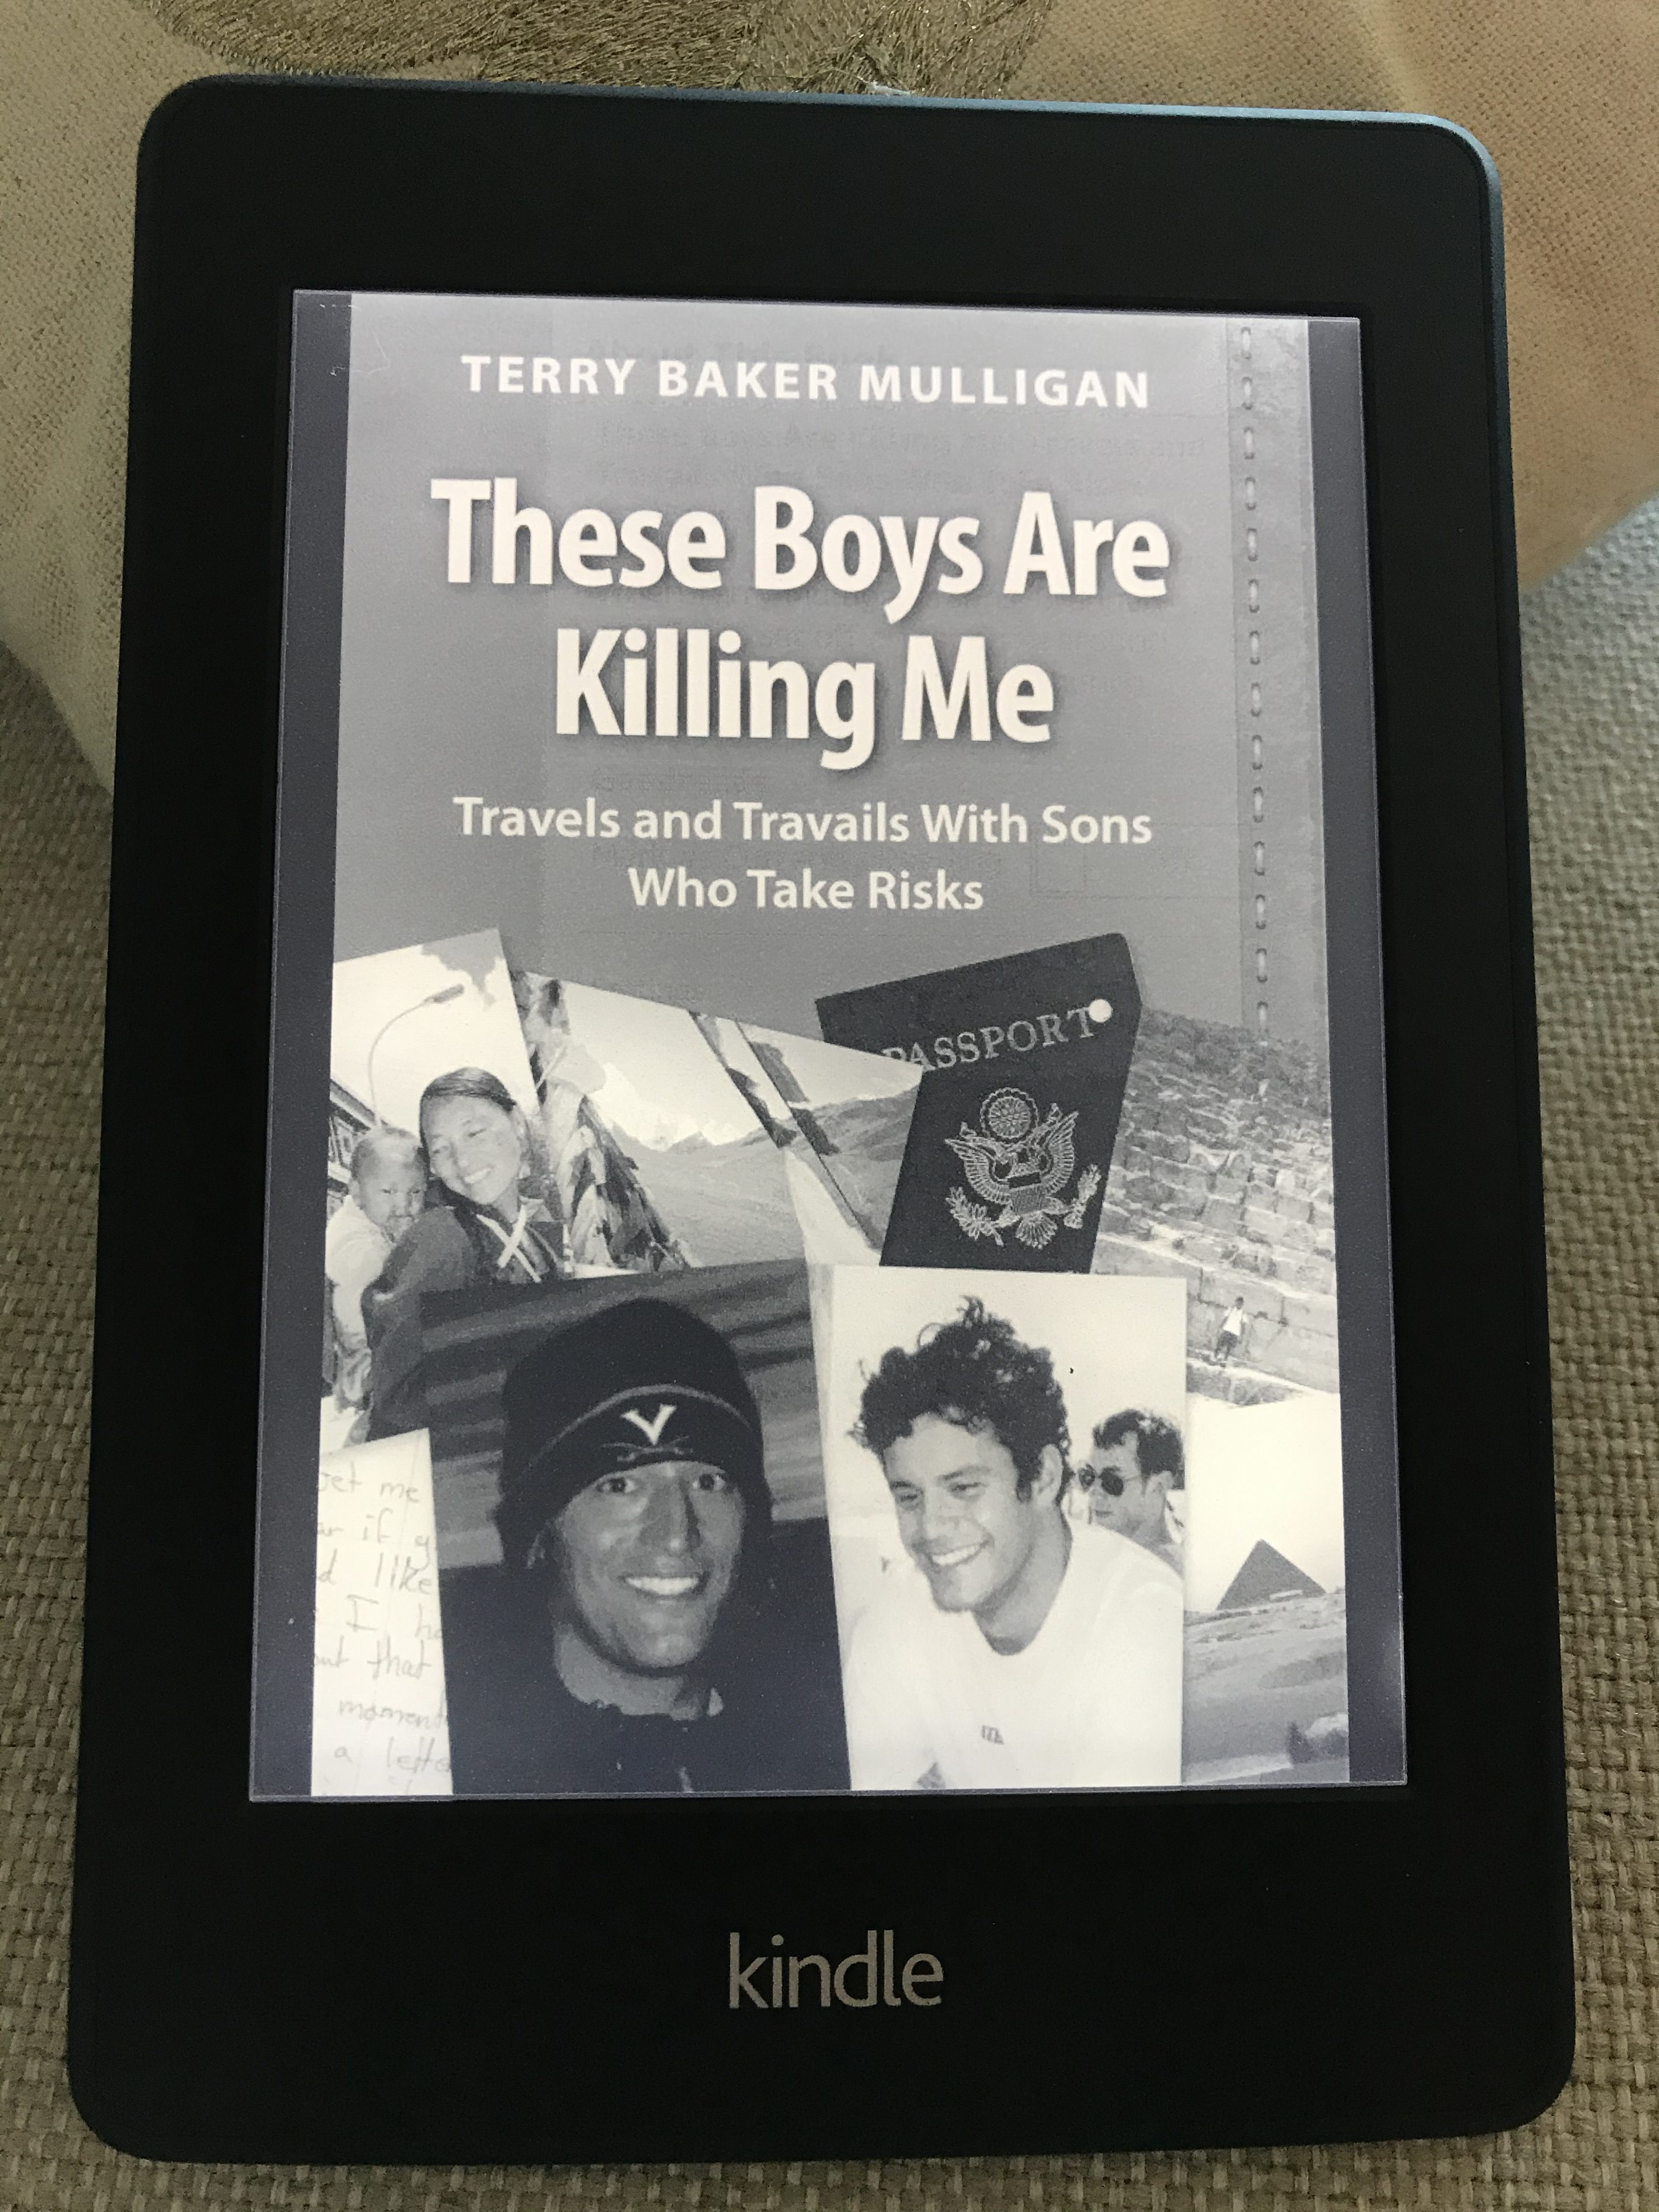 Parent Adult Child Relationships in, THESE BOYS, is a Hit With Readers